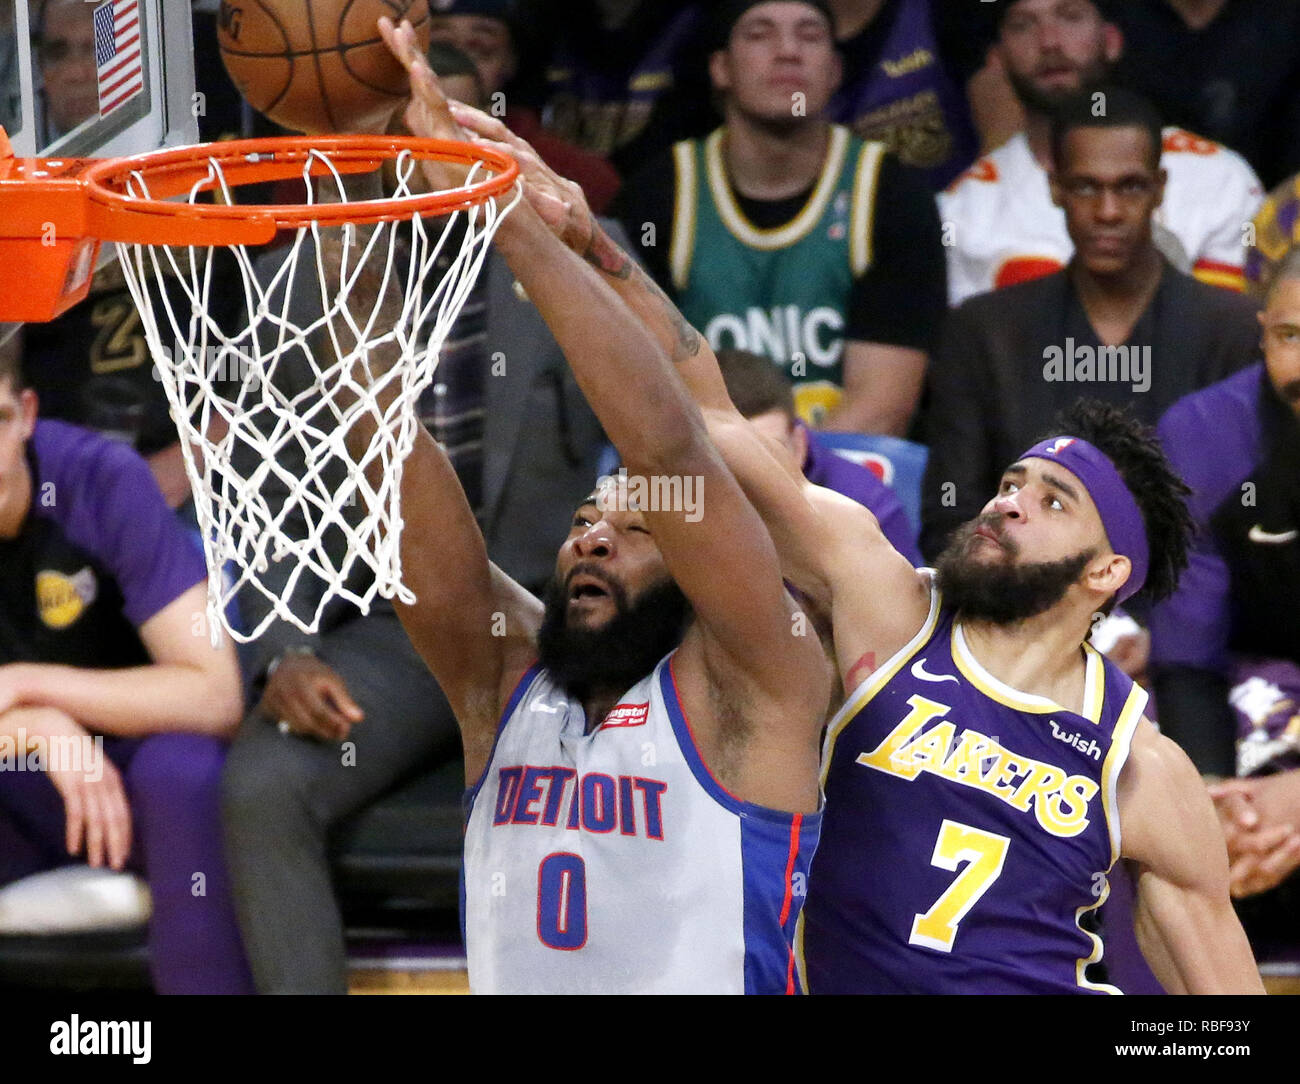 Los Angeles, California, USA. 9th Jan, 2019. Detroit Pistons' Andre Drummond (0) dunks while defined by Los Angeles Lakers' JaVale McGee (7) during an NBA basketball game between Los Angeles Lakers and Detroit Pistons Wednesday, Jan. 9, 2019, in Los Angeles. Credit: Ringo Chiu/ZUMA Wire/Alamy Live News Stock Photo